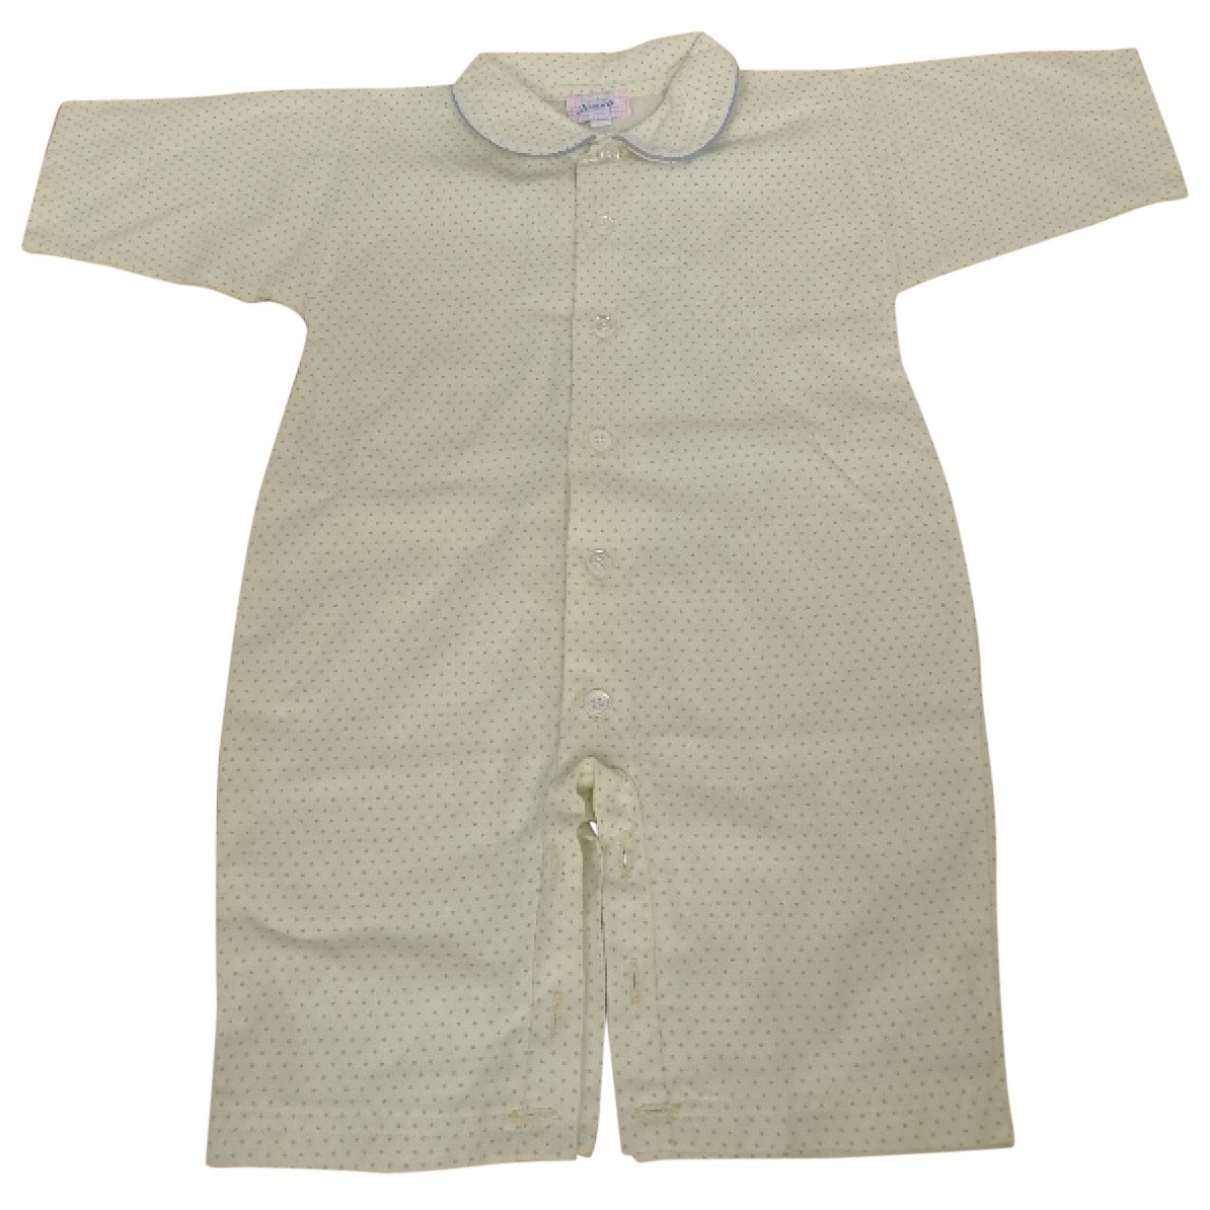 Jacadi \N Yellow Cotton Outfits for Kids 6 months - up to 67cm FR